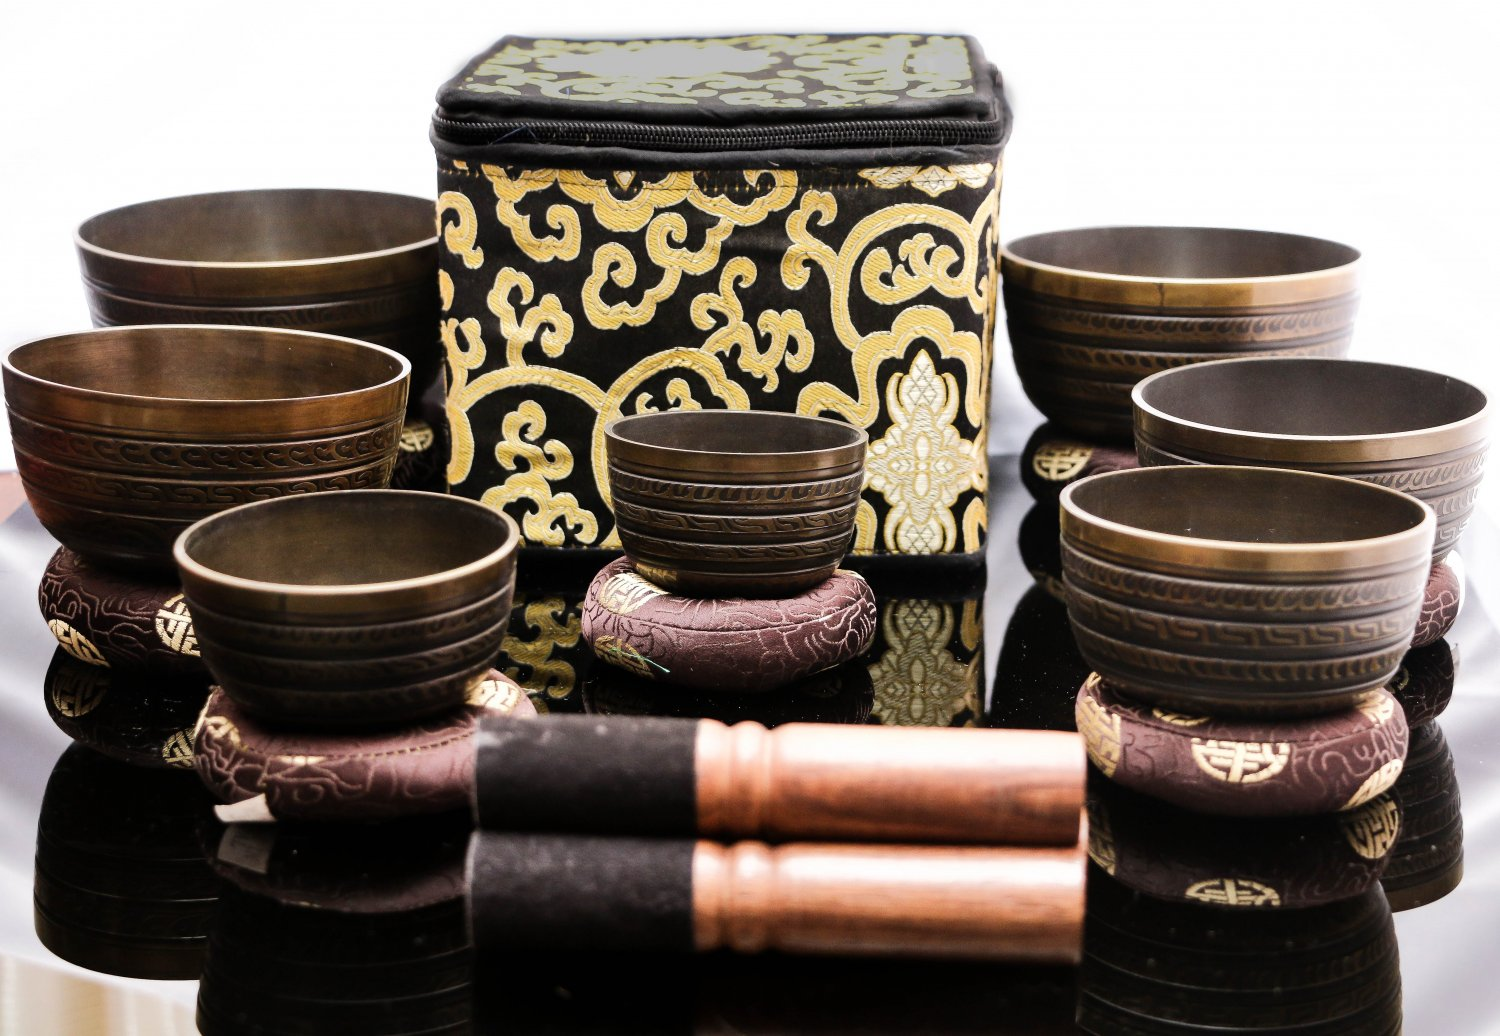 Chakra Healing Singing Bowls -Tibetan Singing Bowl Sets of 7 -Antique Chakra Set